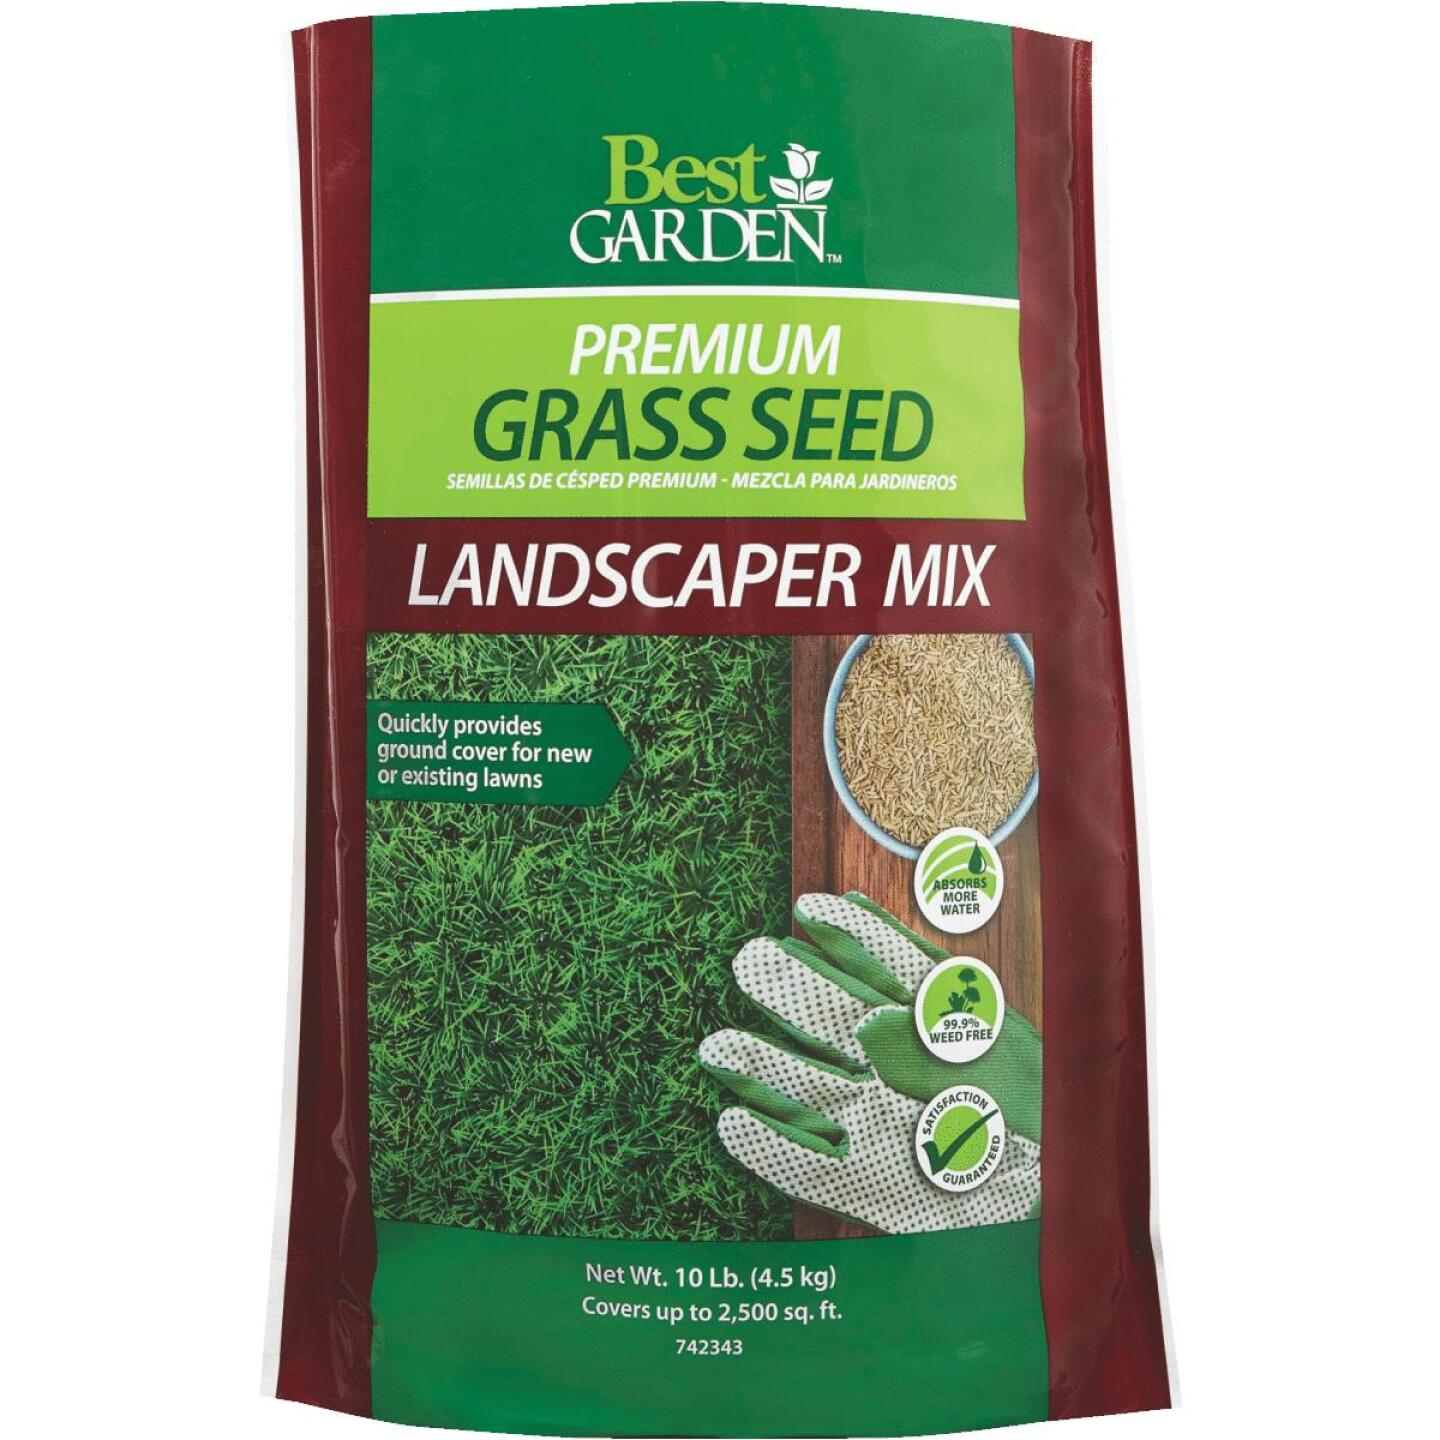 Best Garden 10 Lb. 1500 Sq. Ft. Coverage Sun to Partial Shade Grass Seed Image 1